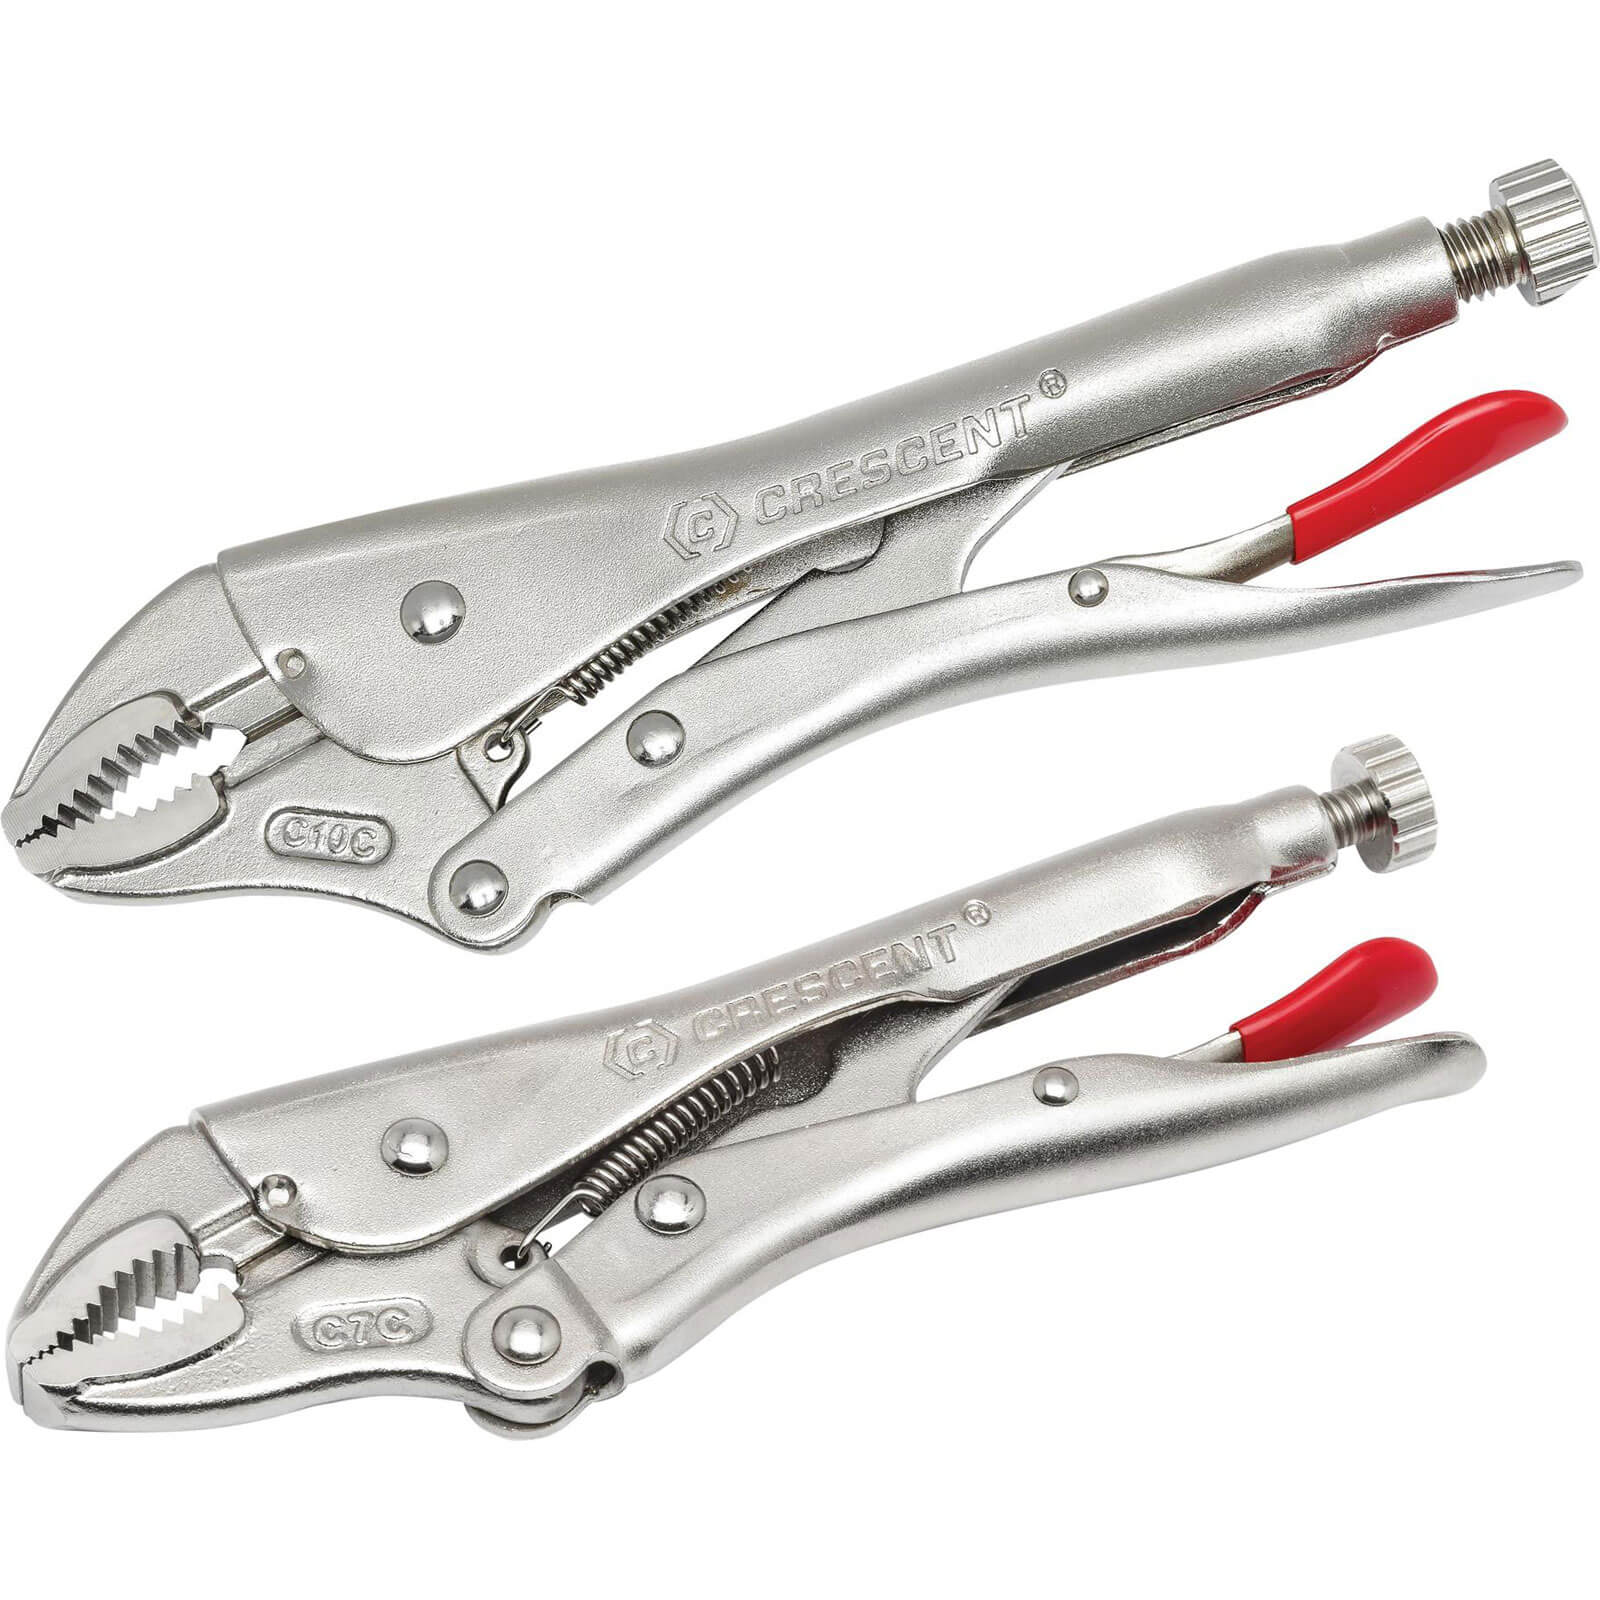 Image of Crescent 2 Piece Curved Jaw Locking Pliers With Wire Cutter Set